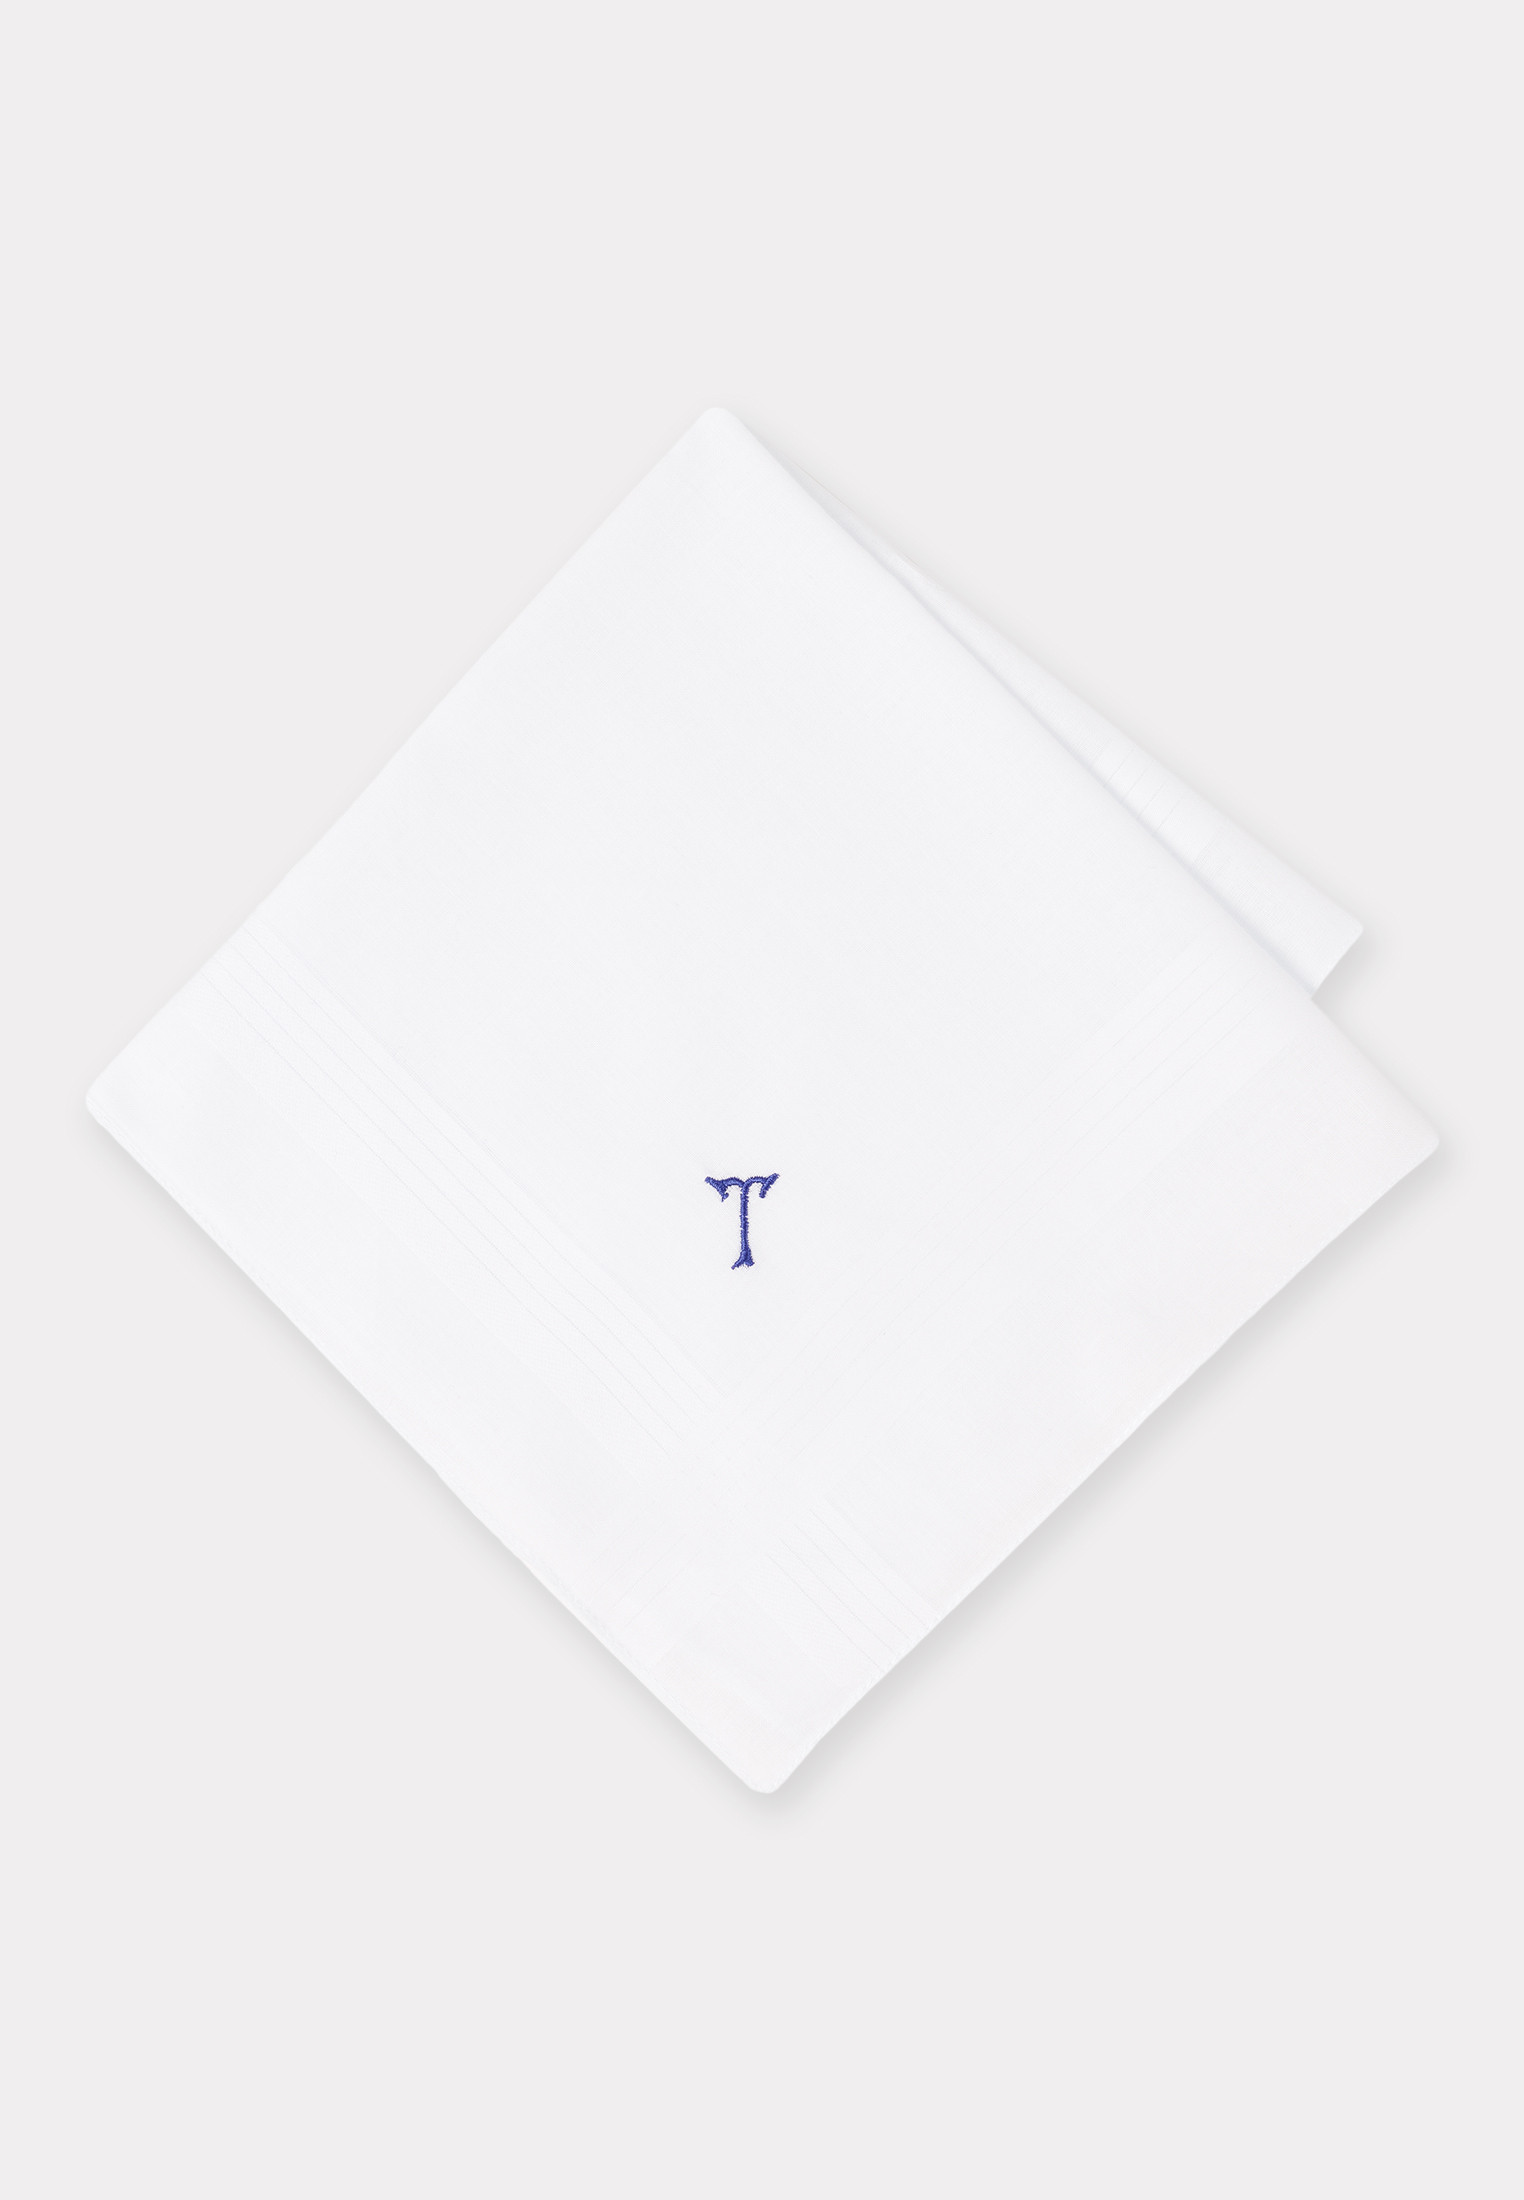 Handkerchief Monogrammed with Initial 'T' - Presentation Pack of 3